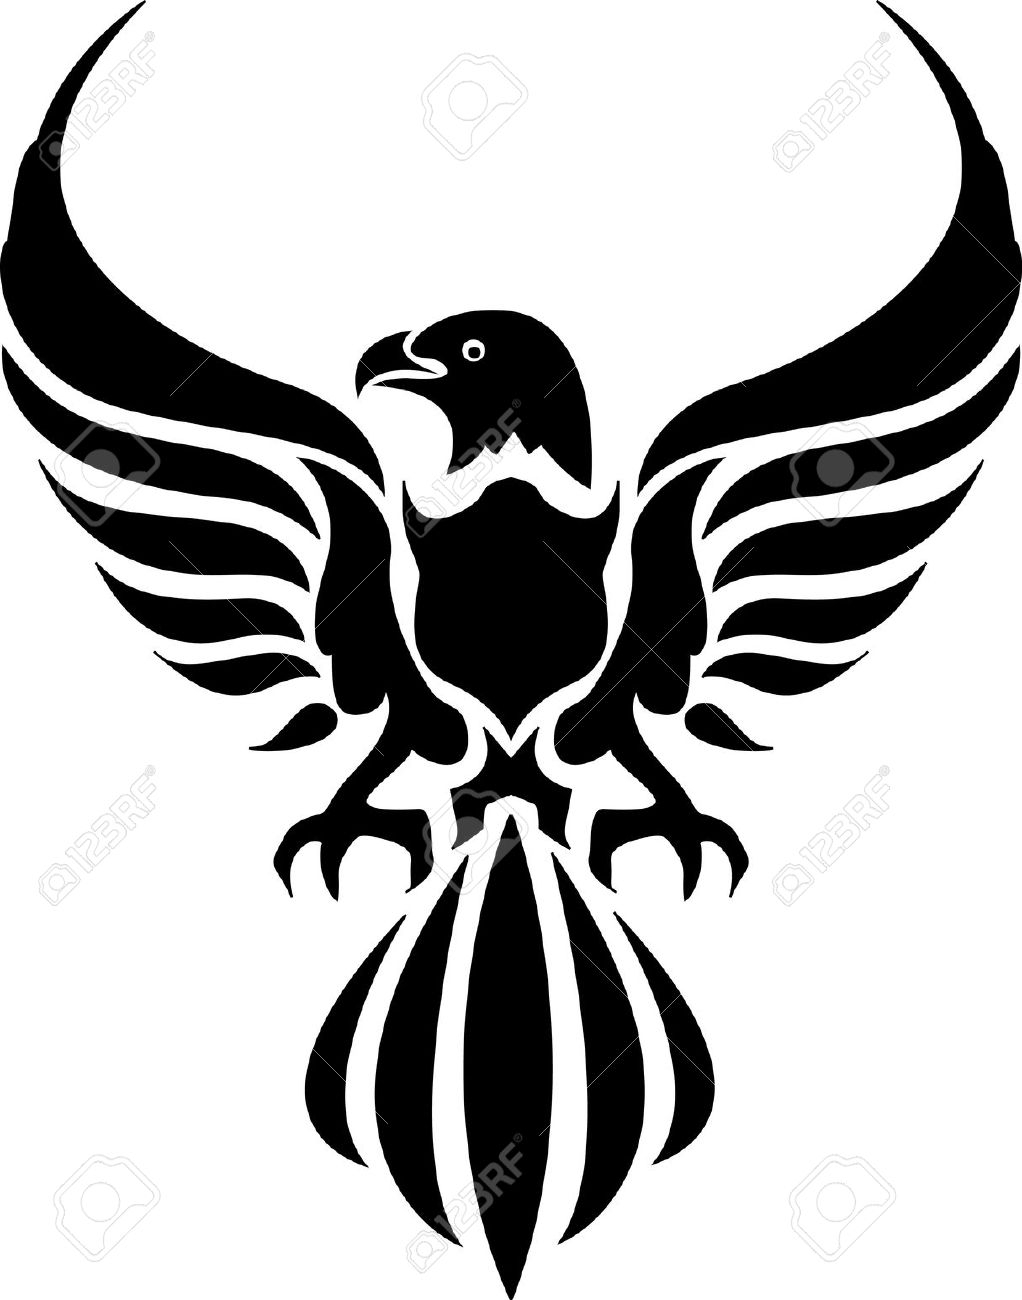 1022x1300 Black And White Eagle Drawing 27,851 Eagle Stock Vector